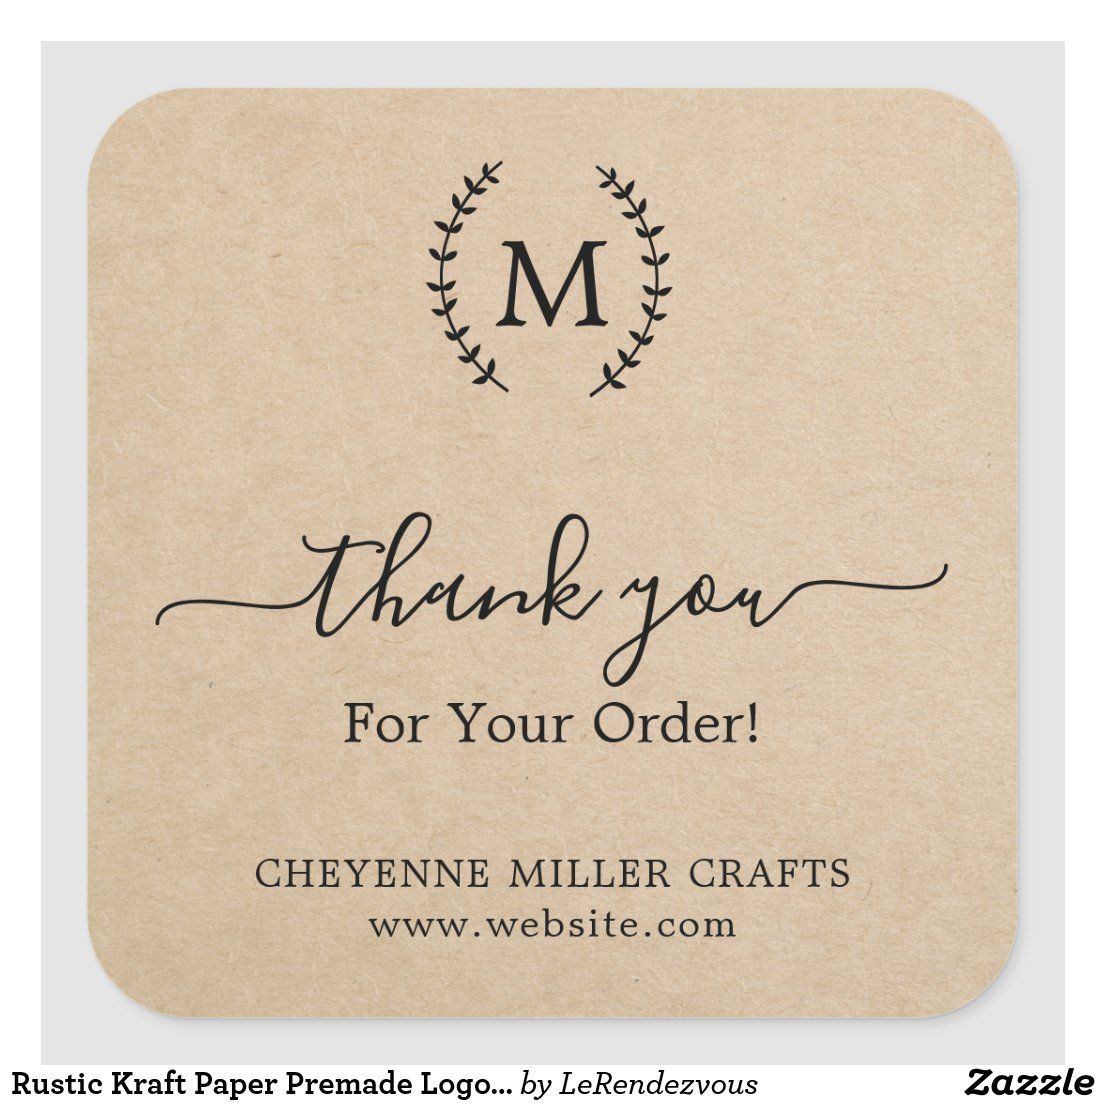 Thank You Business Rustic Kraft Paper Premade Logo Square Sticker Zazzle Com In 2021 Etsy Packaging Small Business Packaging Ideas Packaging Ideas Business